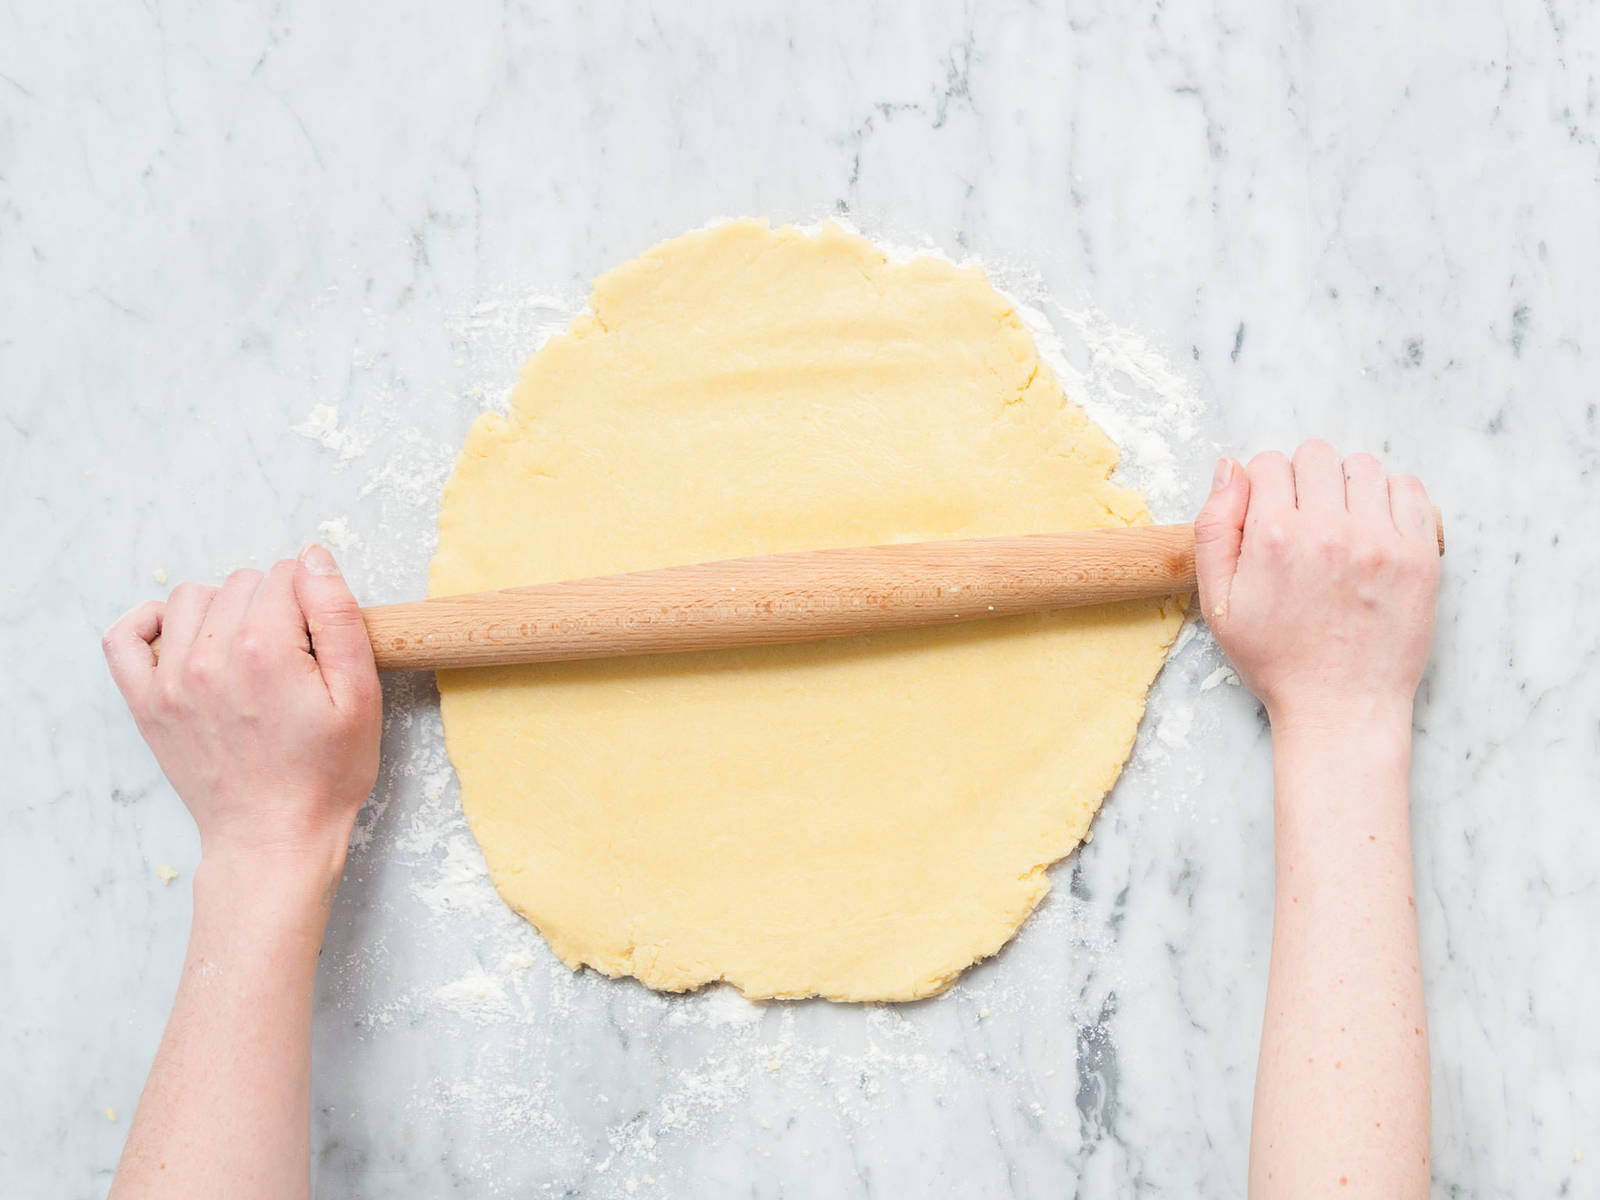 Add flour, sugar, baking powder, salt, butter, and eggs to a large mixing bowl and mix with a hand mixer until combined. Transfer dough onto a floured work surface and roll out until it's approx. 1-cm/0.5-inch thick. Cut into rectangles using a knife or pastry wheel,